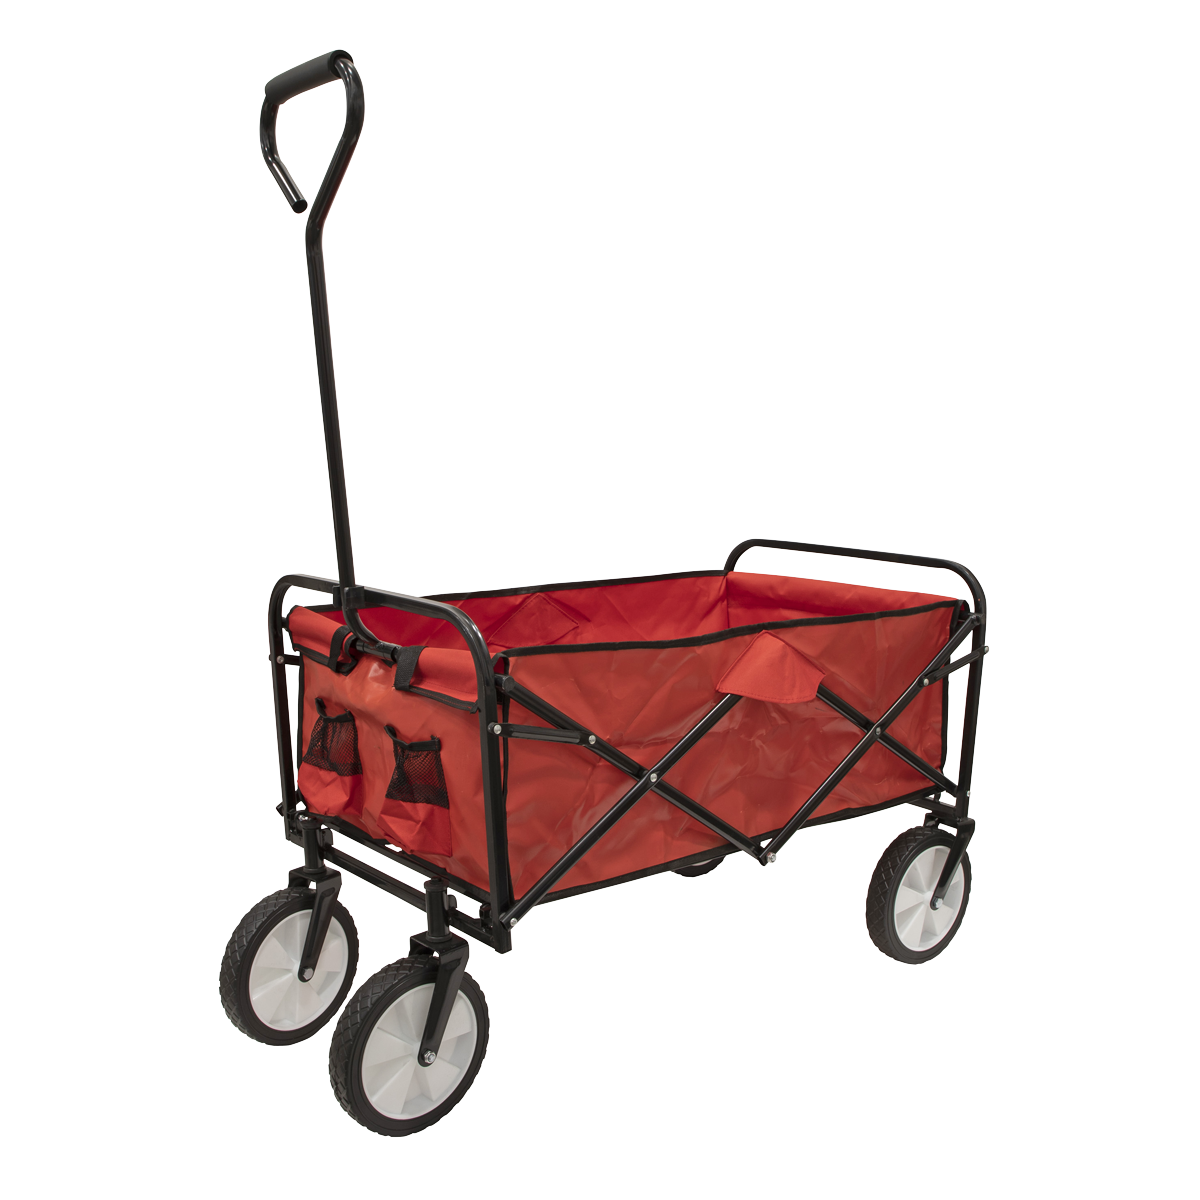 Canvas Trolley 70kg Capacity Foldable